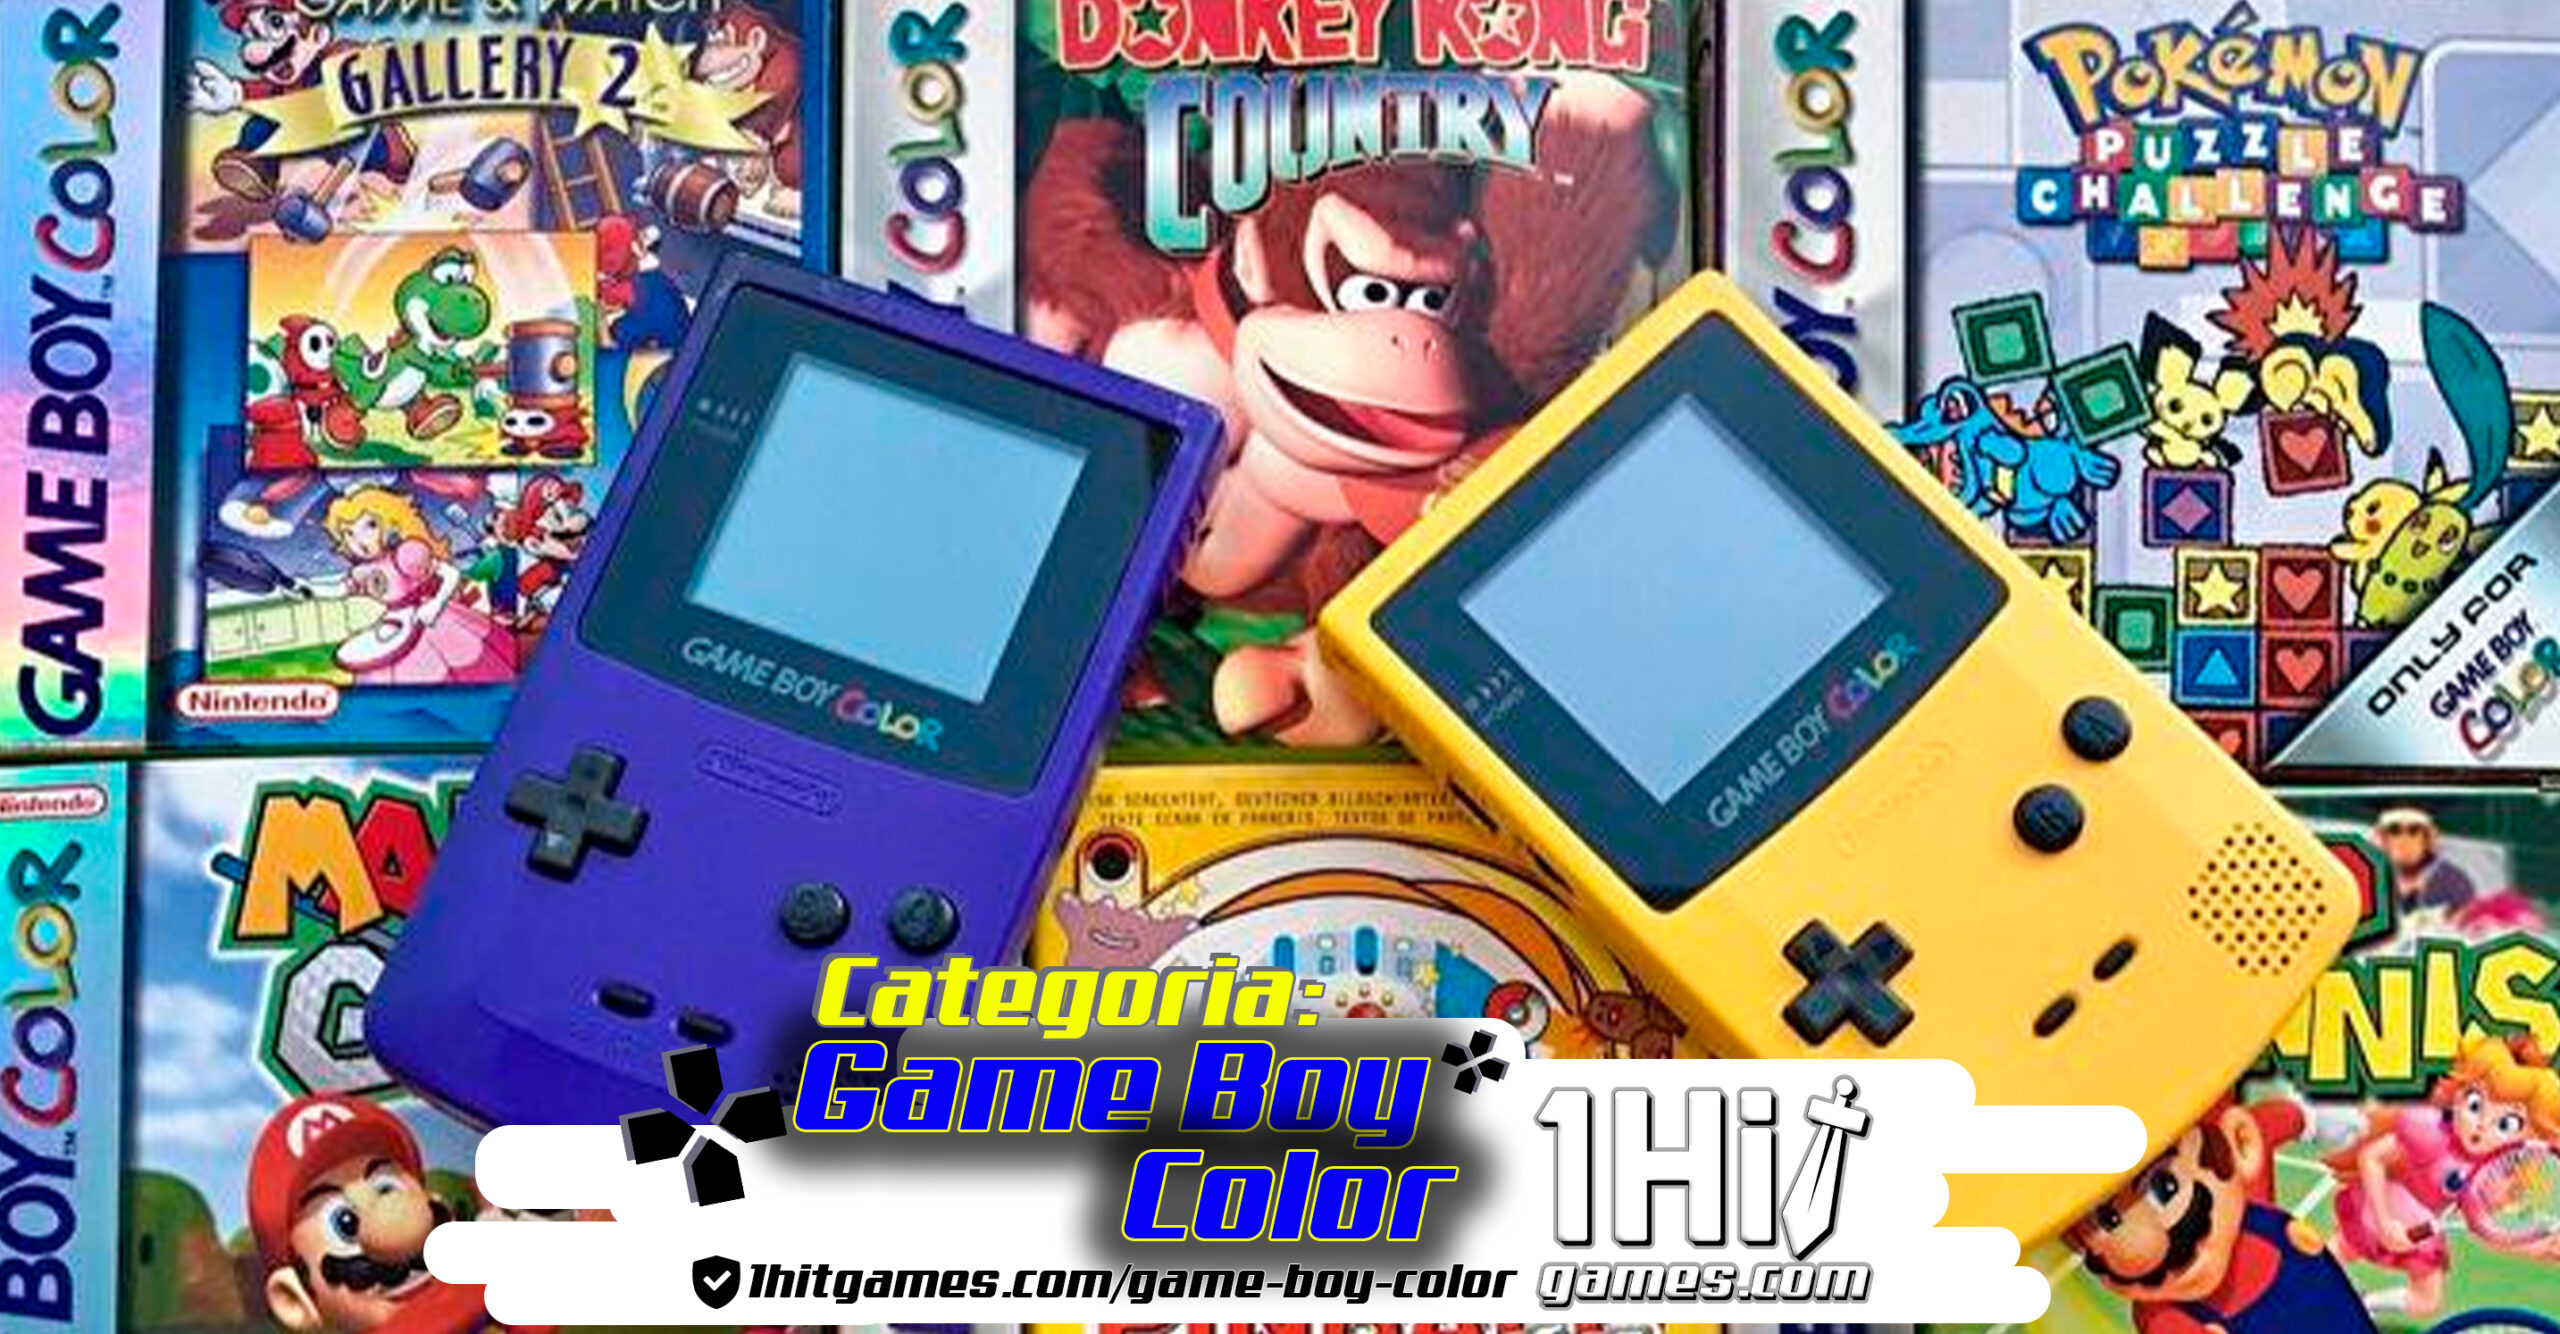 Game Boy color Nintendo 1hitgames categoria gaming 1hit